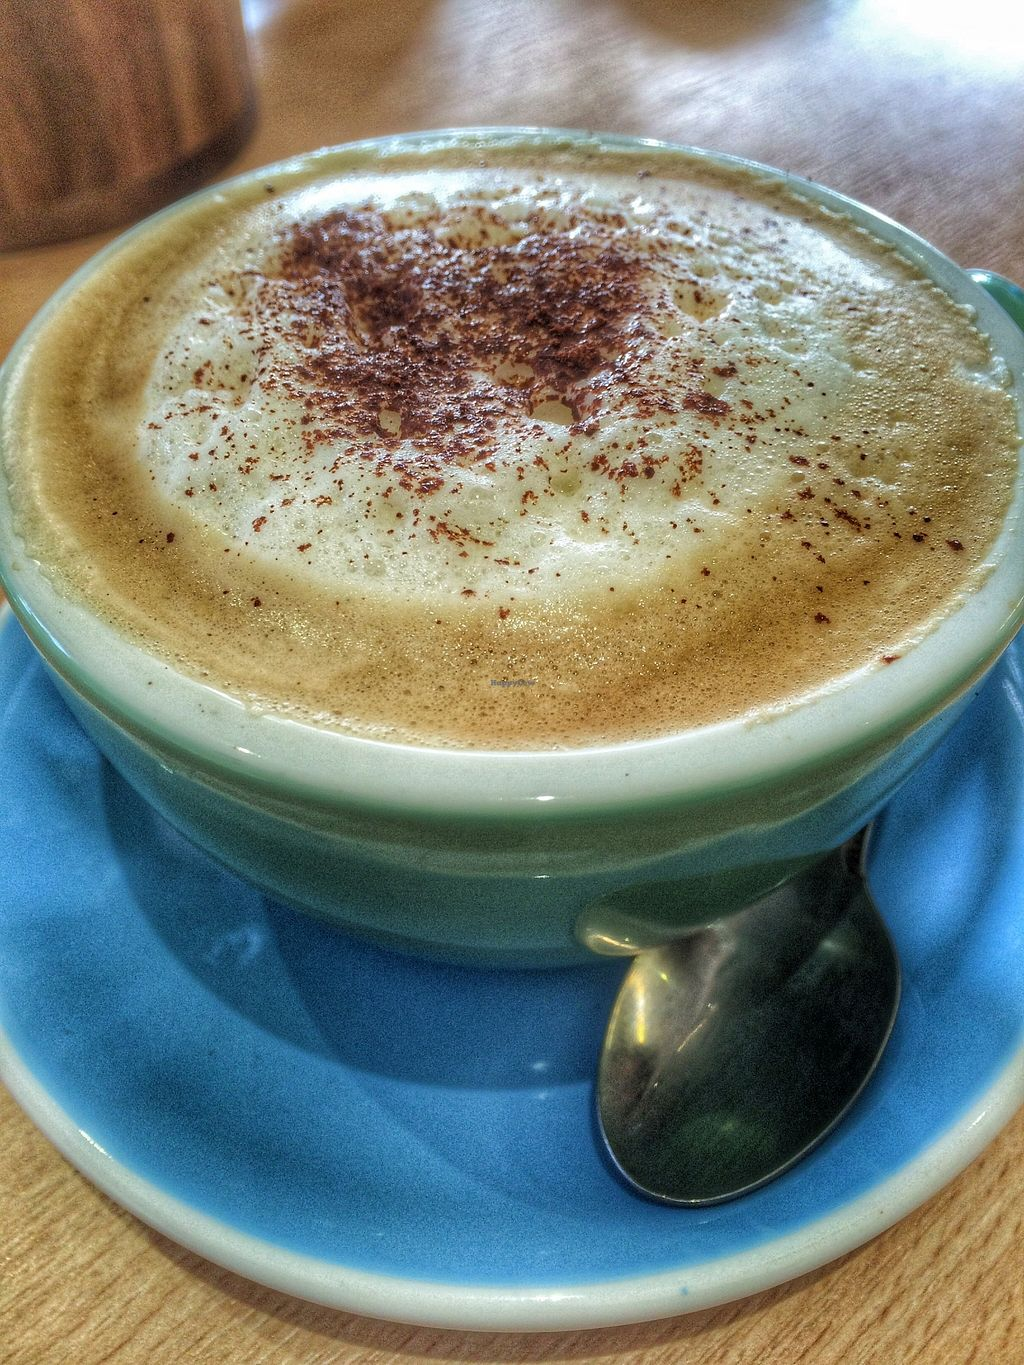 """Photo of Loving Hut Cafe - St Peter's Place  by <a href=""""/members/profile/Edible%20Journey"""">Edible Journey</a> <br/>Soya milk cappucino (my first but not my last!!) <br/> October 26, 2015  - <a href='/contact/abuse/image/58717/122721'>Report</a>"""